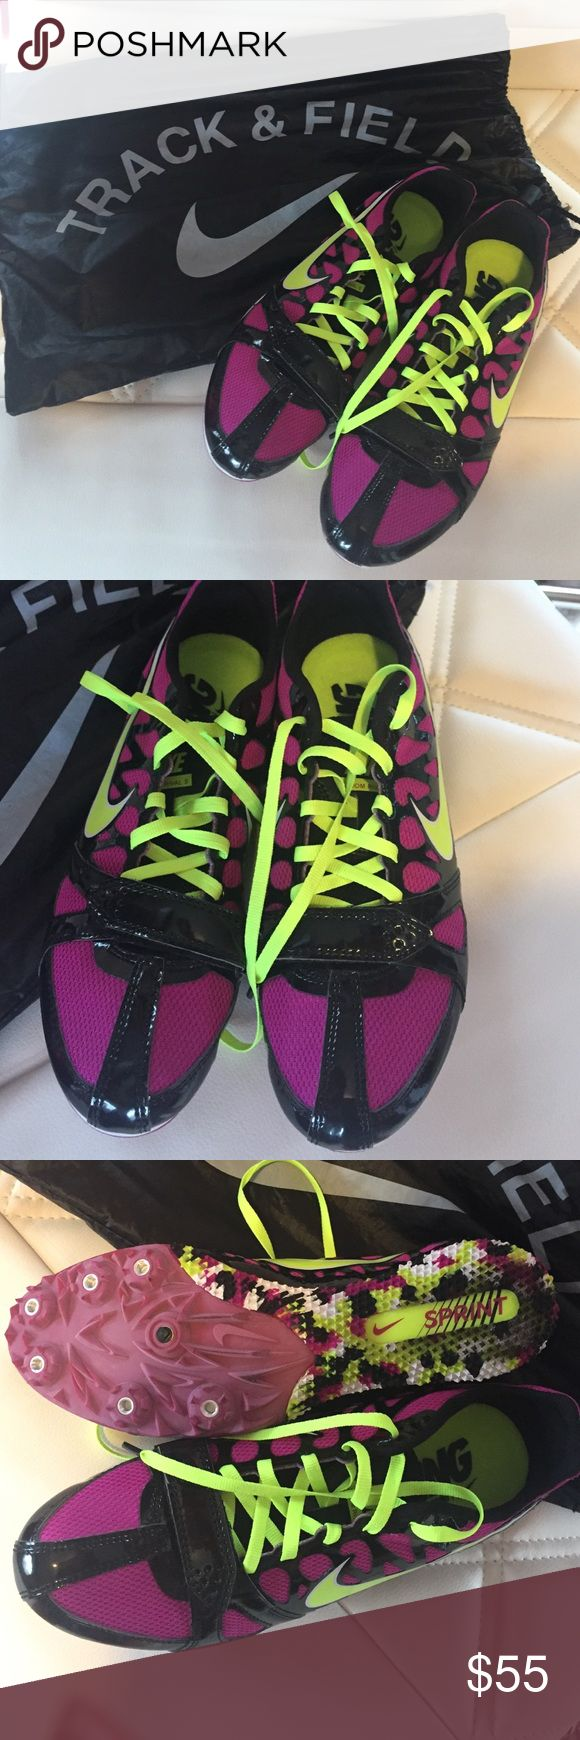 Brand-new Nike track and field spikes Purple and green and black brand-new Nike track and field sprint shoes they have never been worn and come in the original bag Nike Shoes Athletic Shoes